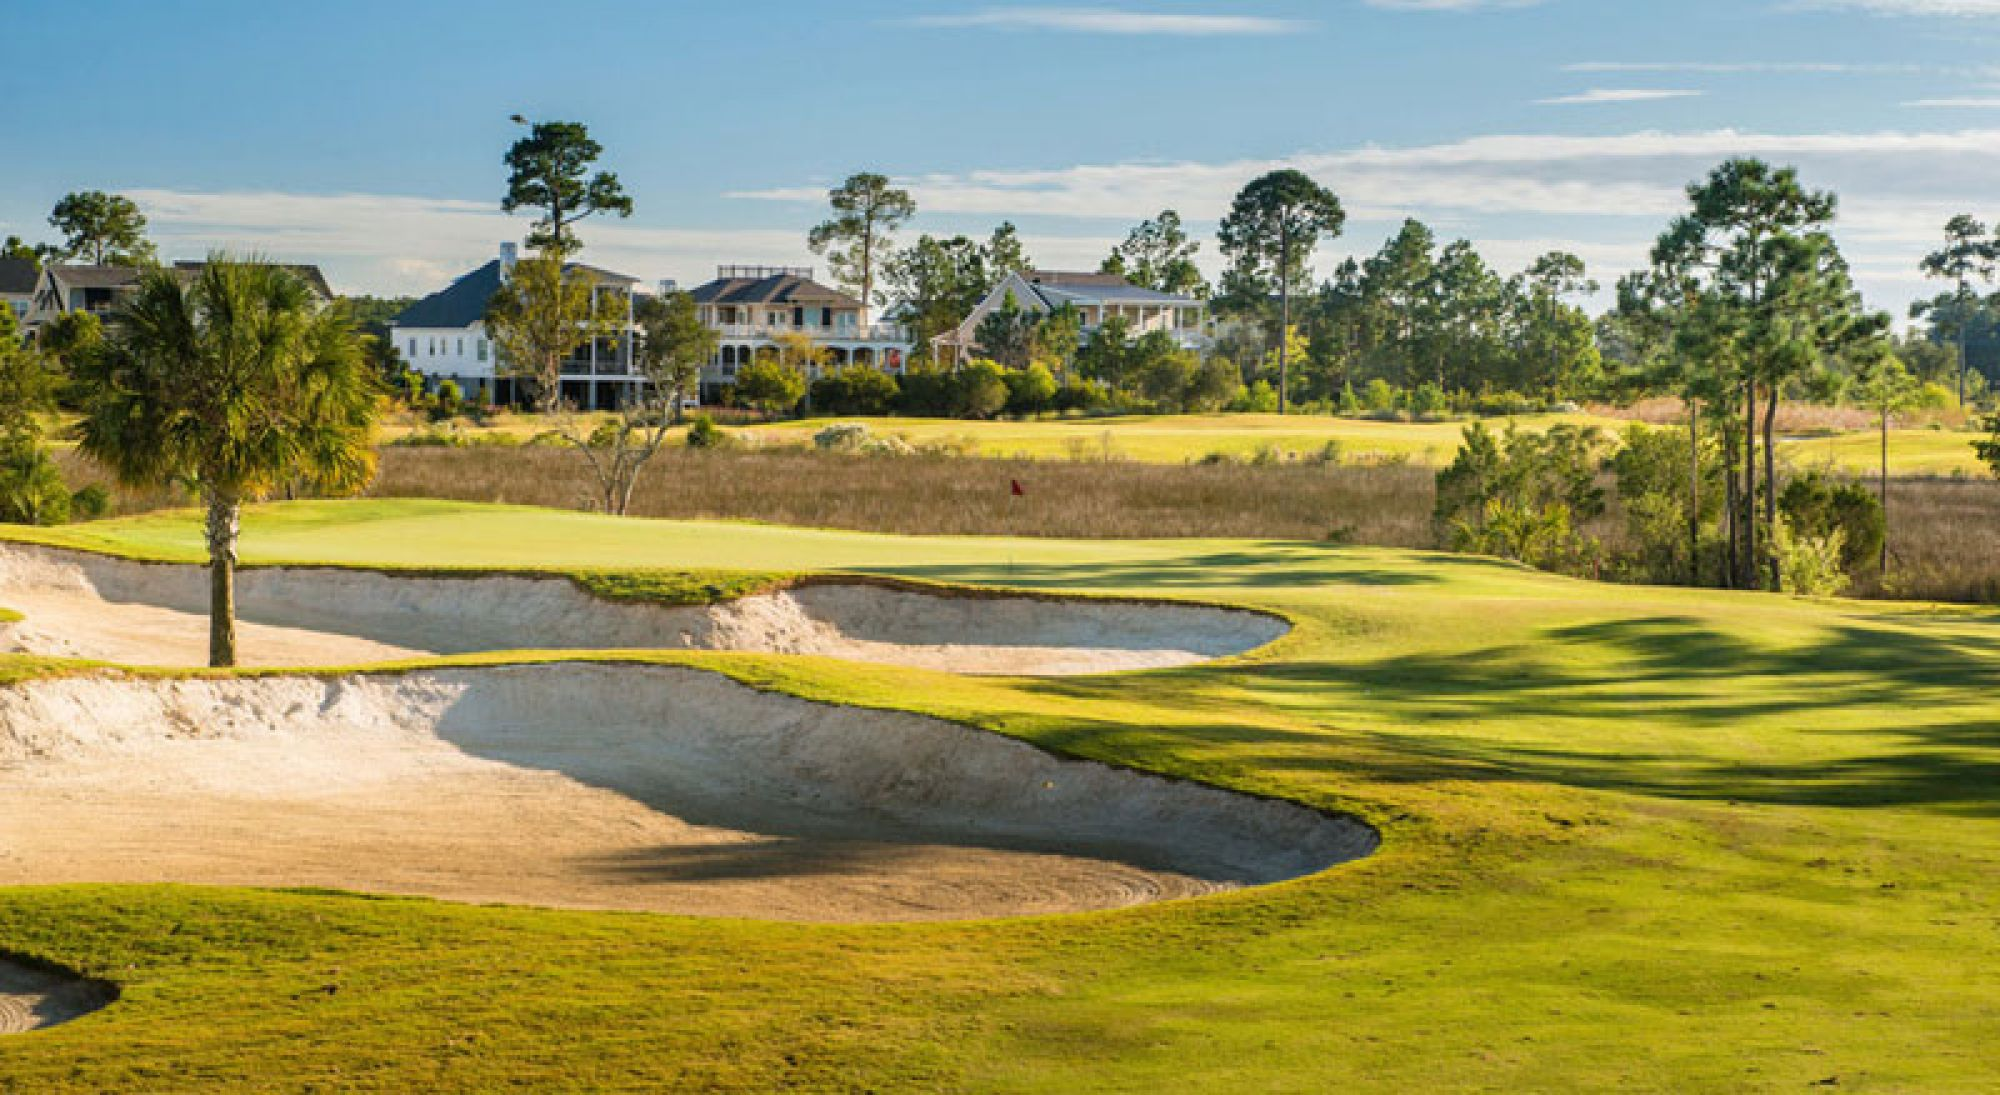 RiverTowne Country Club offers some of the most desirable golf course in South Carolina